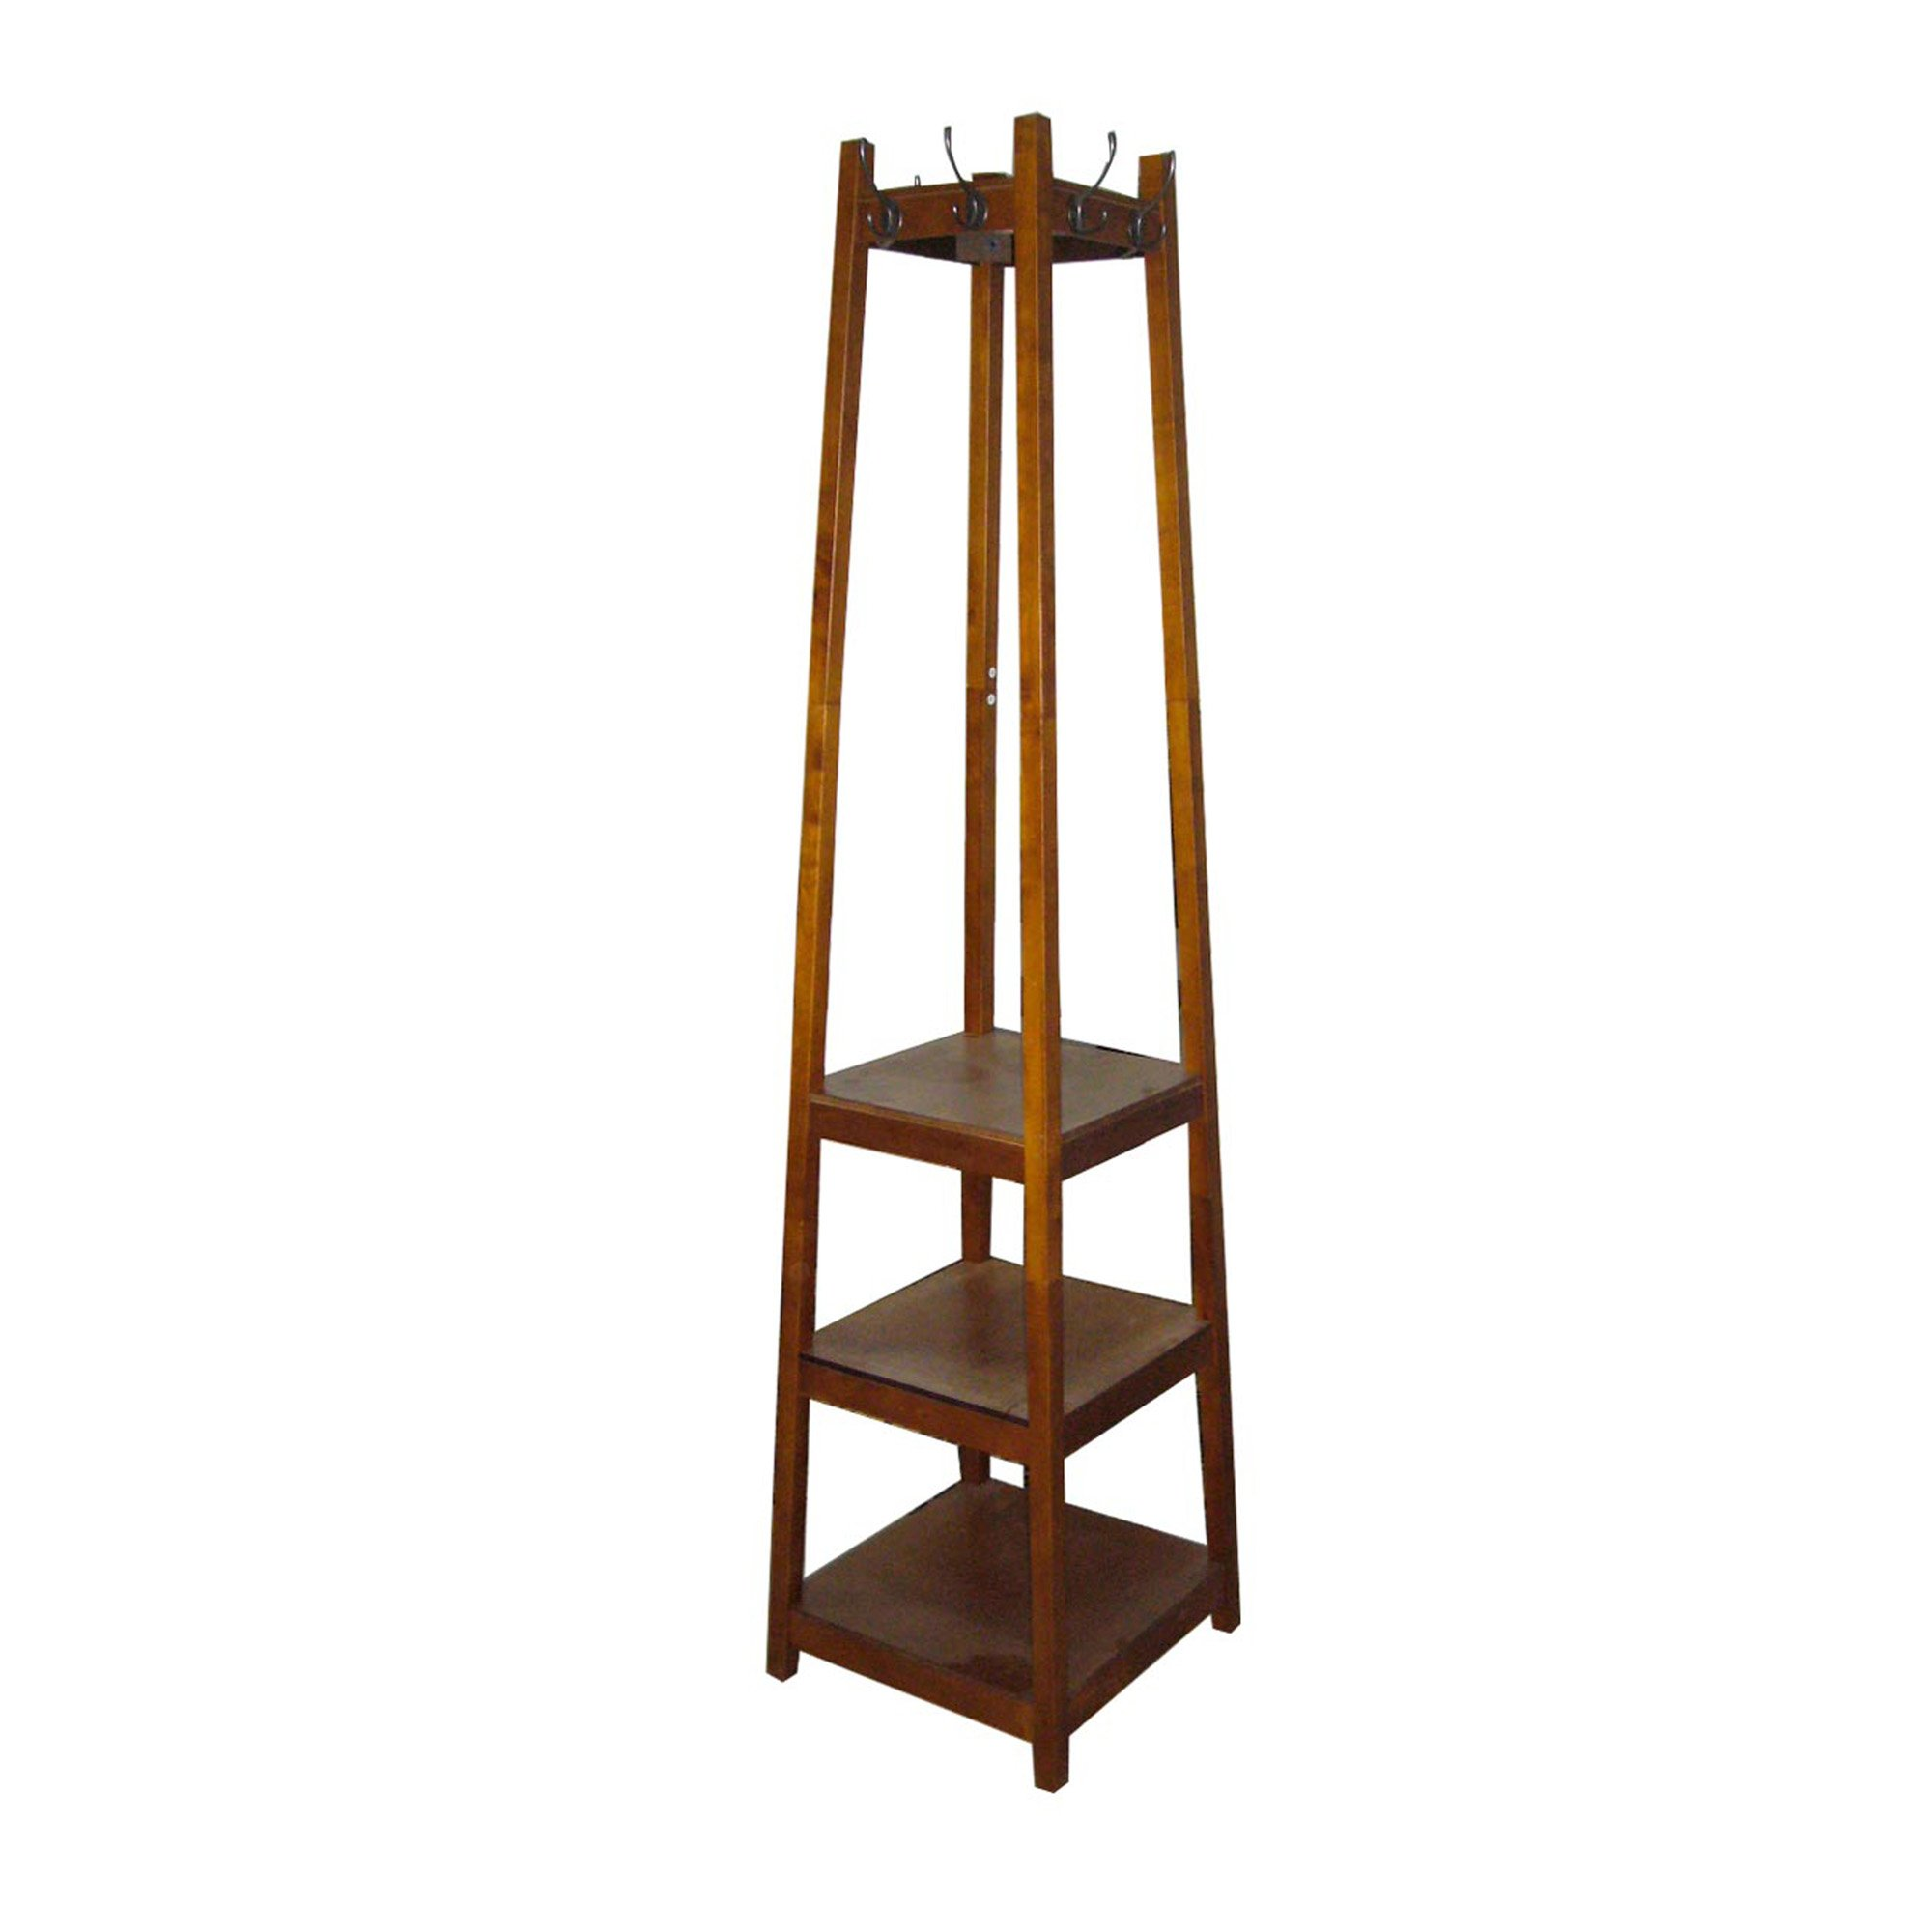 ORE International AFW1275C Three Tier Tower Shoe and Coat Rack, Brown